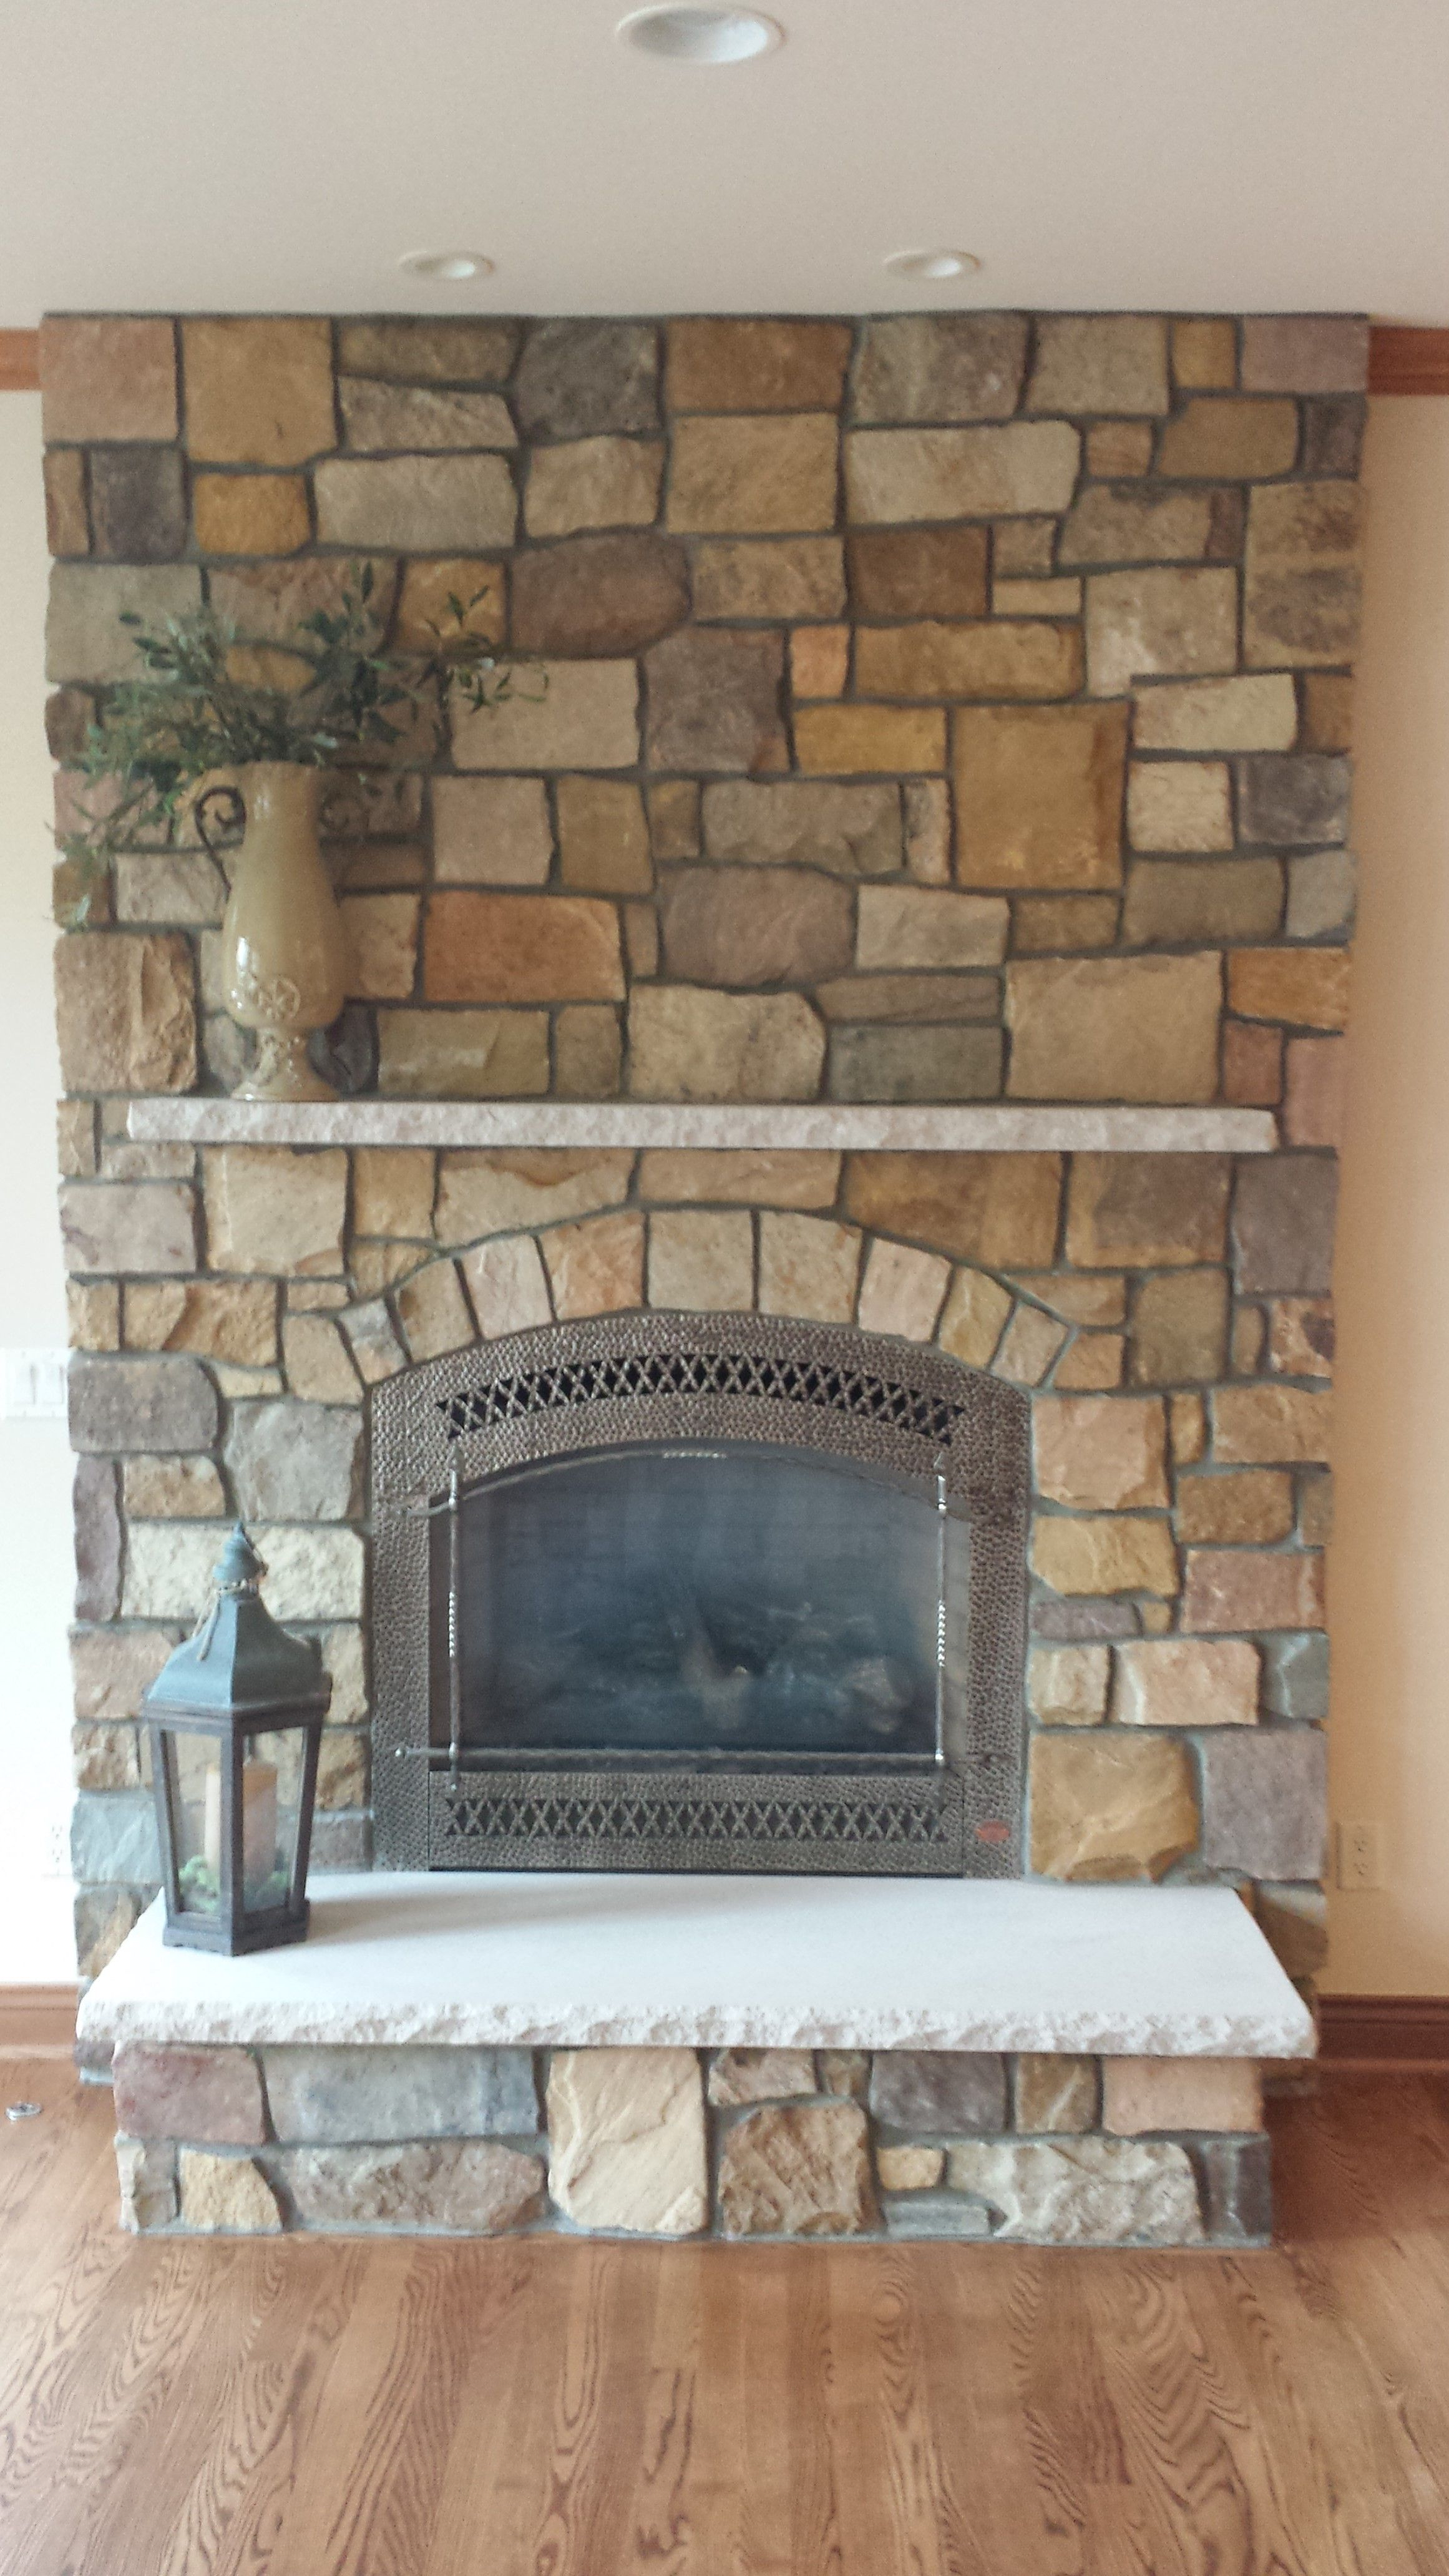 Gold Rush Natural Thin Veneer From General Shale Rock With Limestone Mantel Hearth 864 Fpx Dv